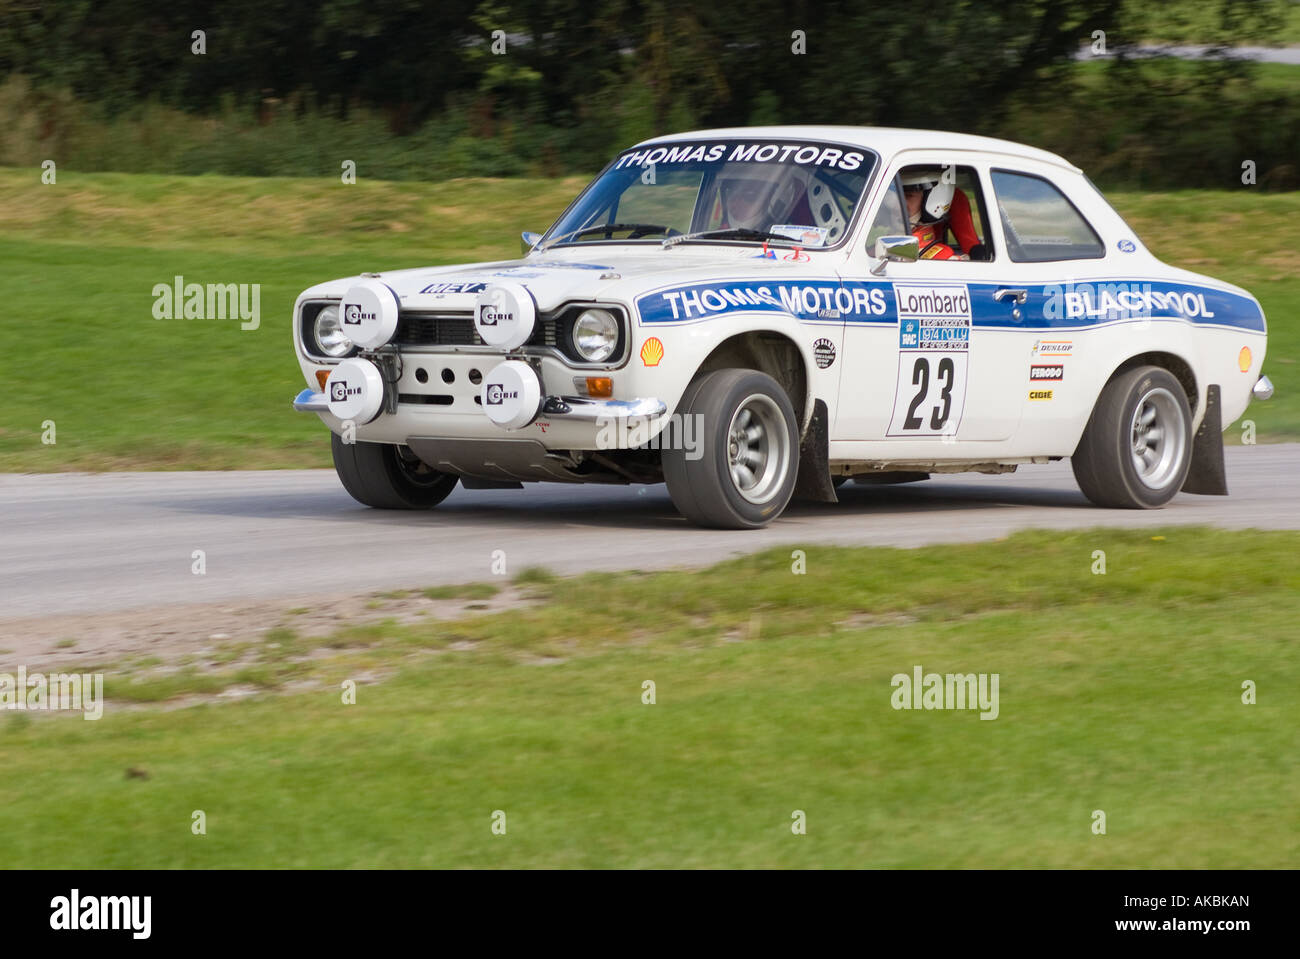 Ford Escort Mk1 Rally Car at Oulton Park Motor Racing Circuit near ...